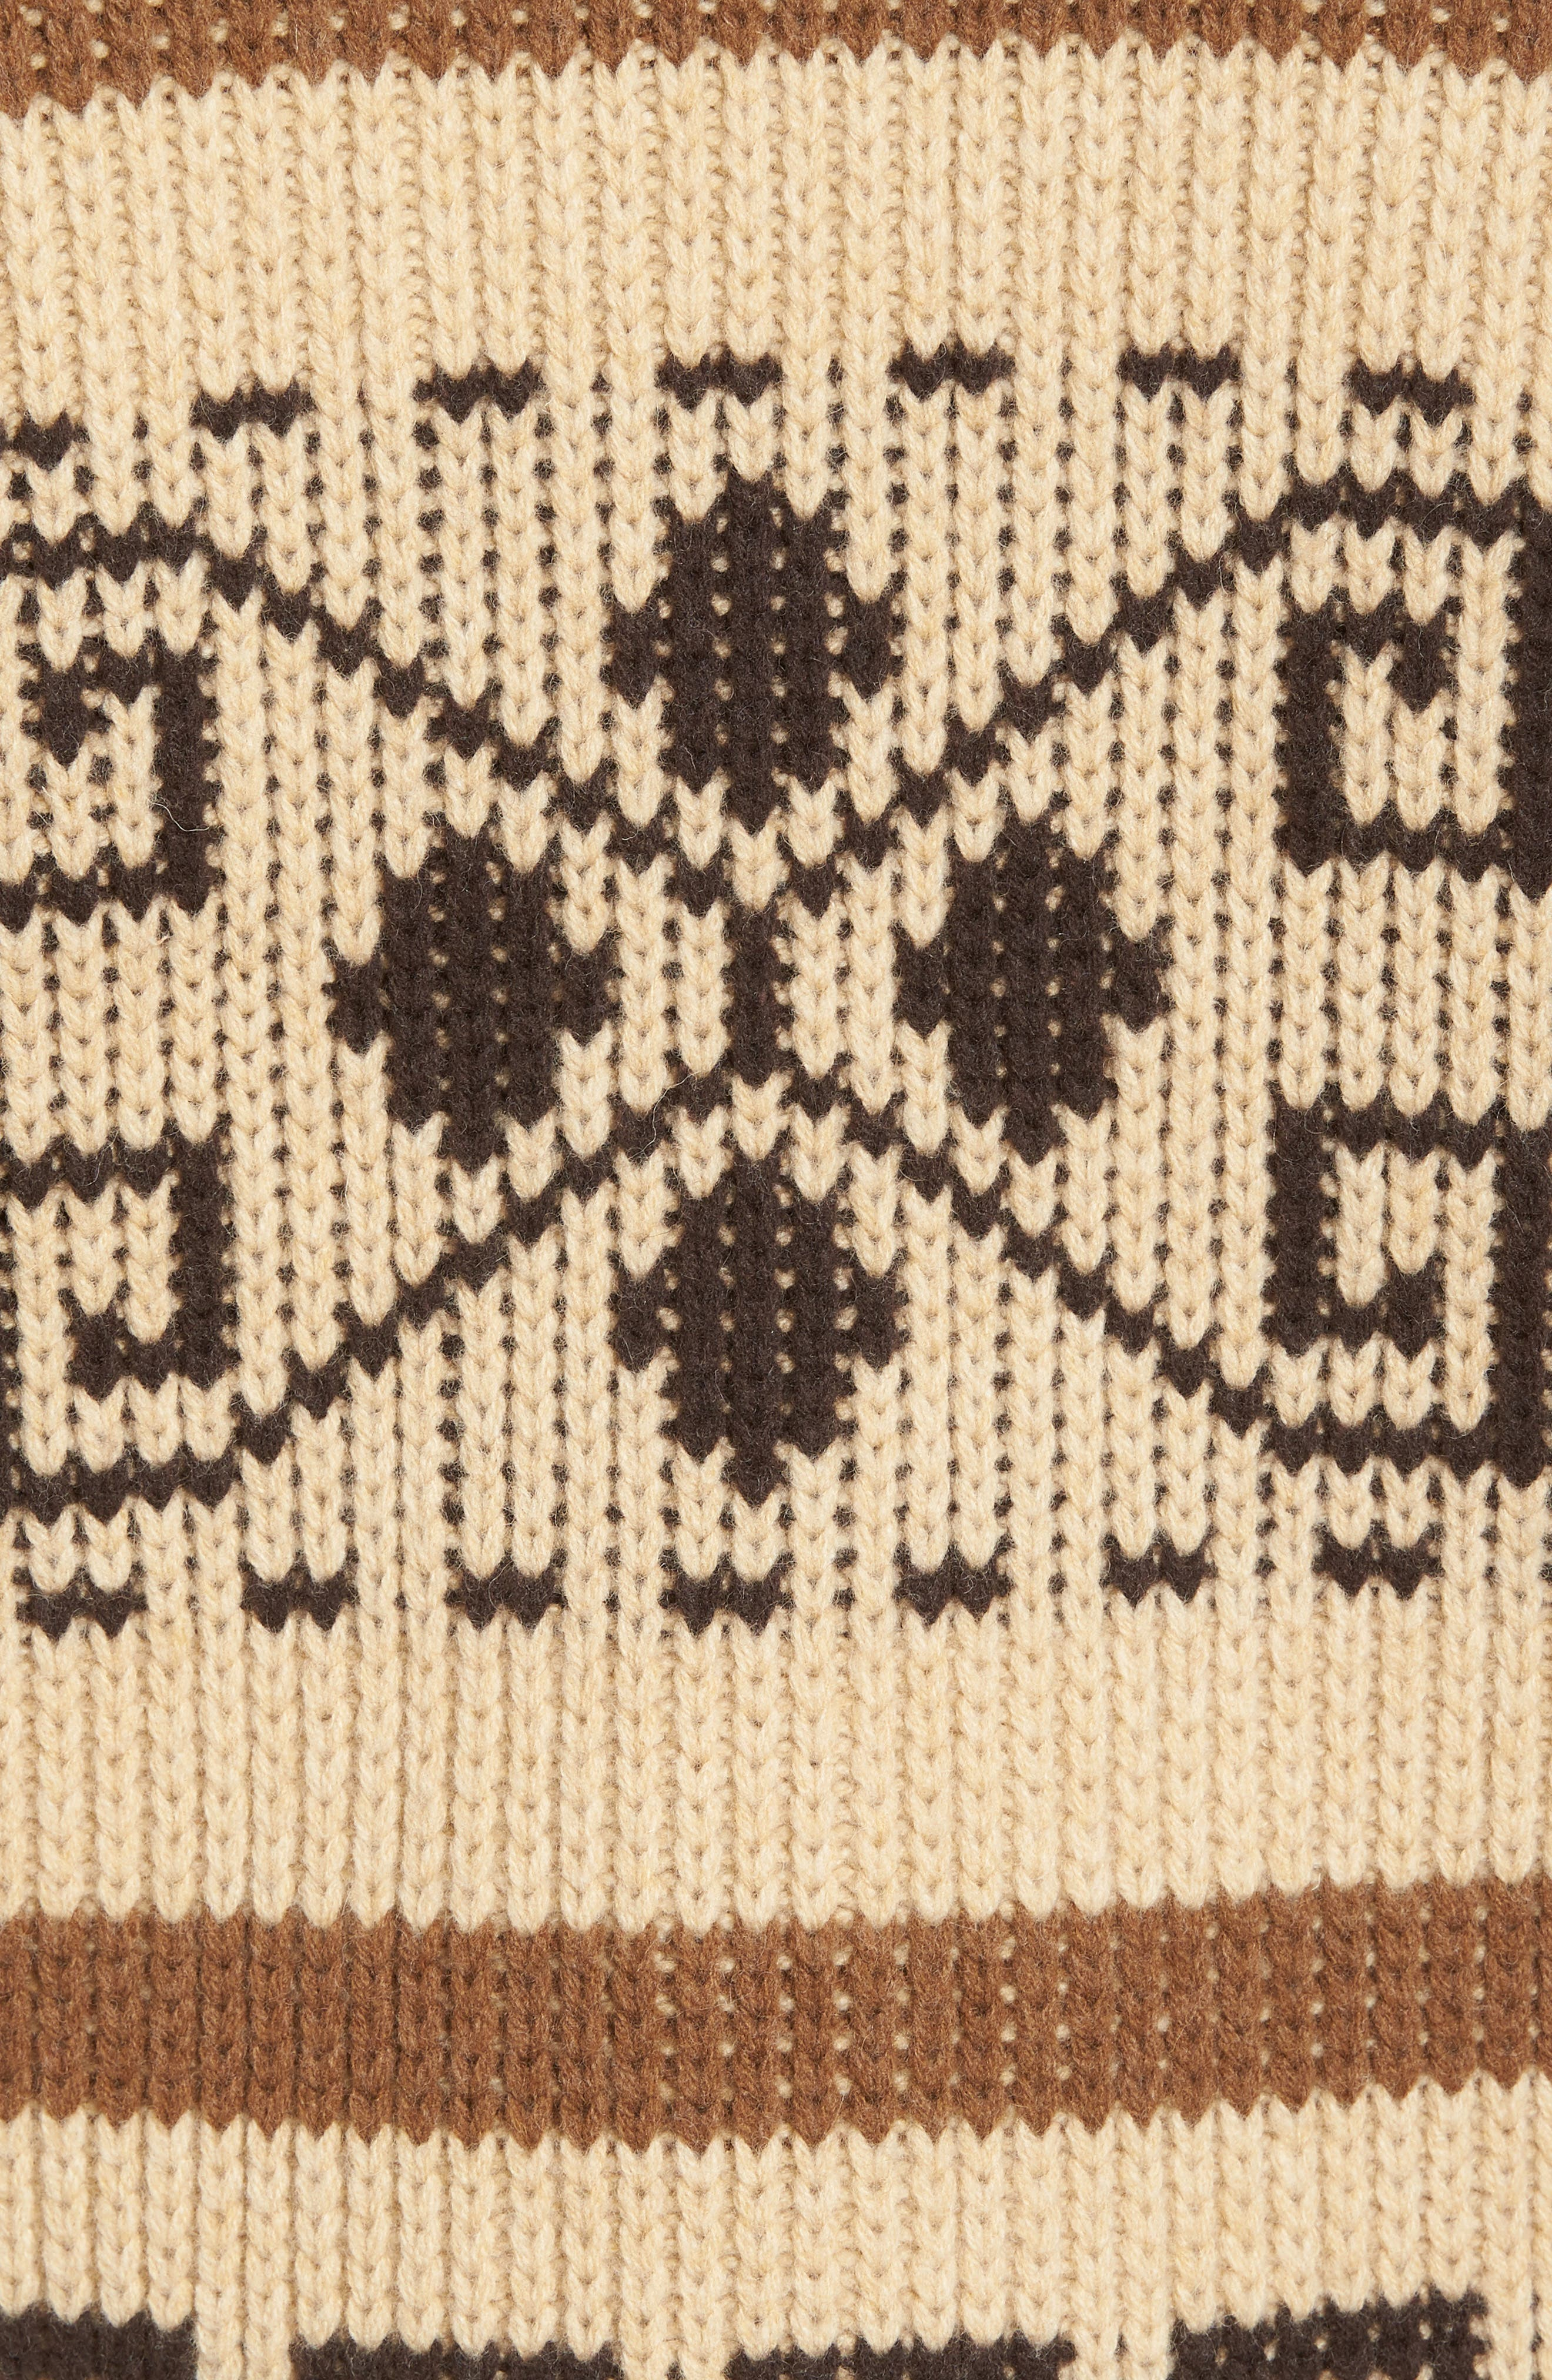 Original Westerly Sweater,                             Alternate thumbnail 5, color,                             260